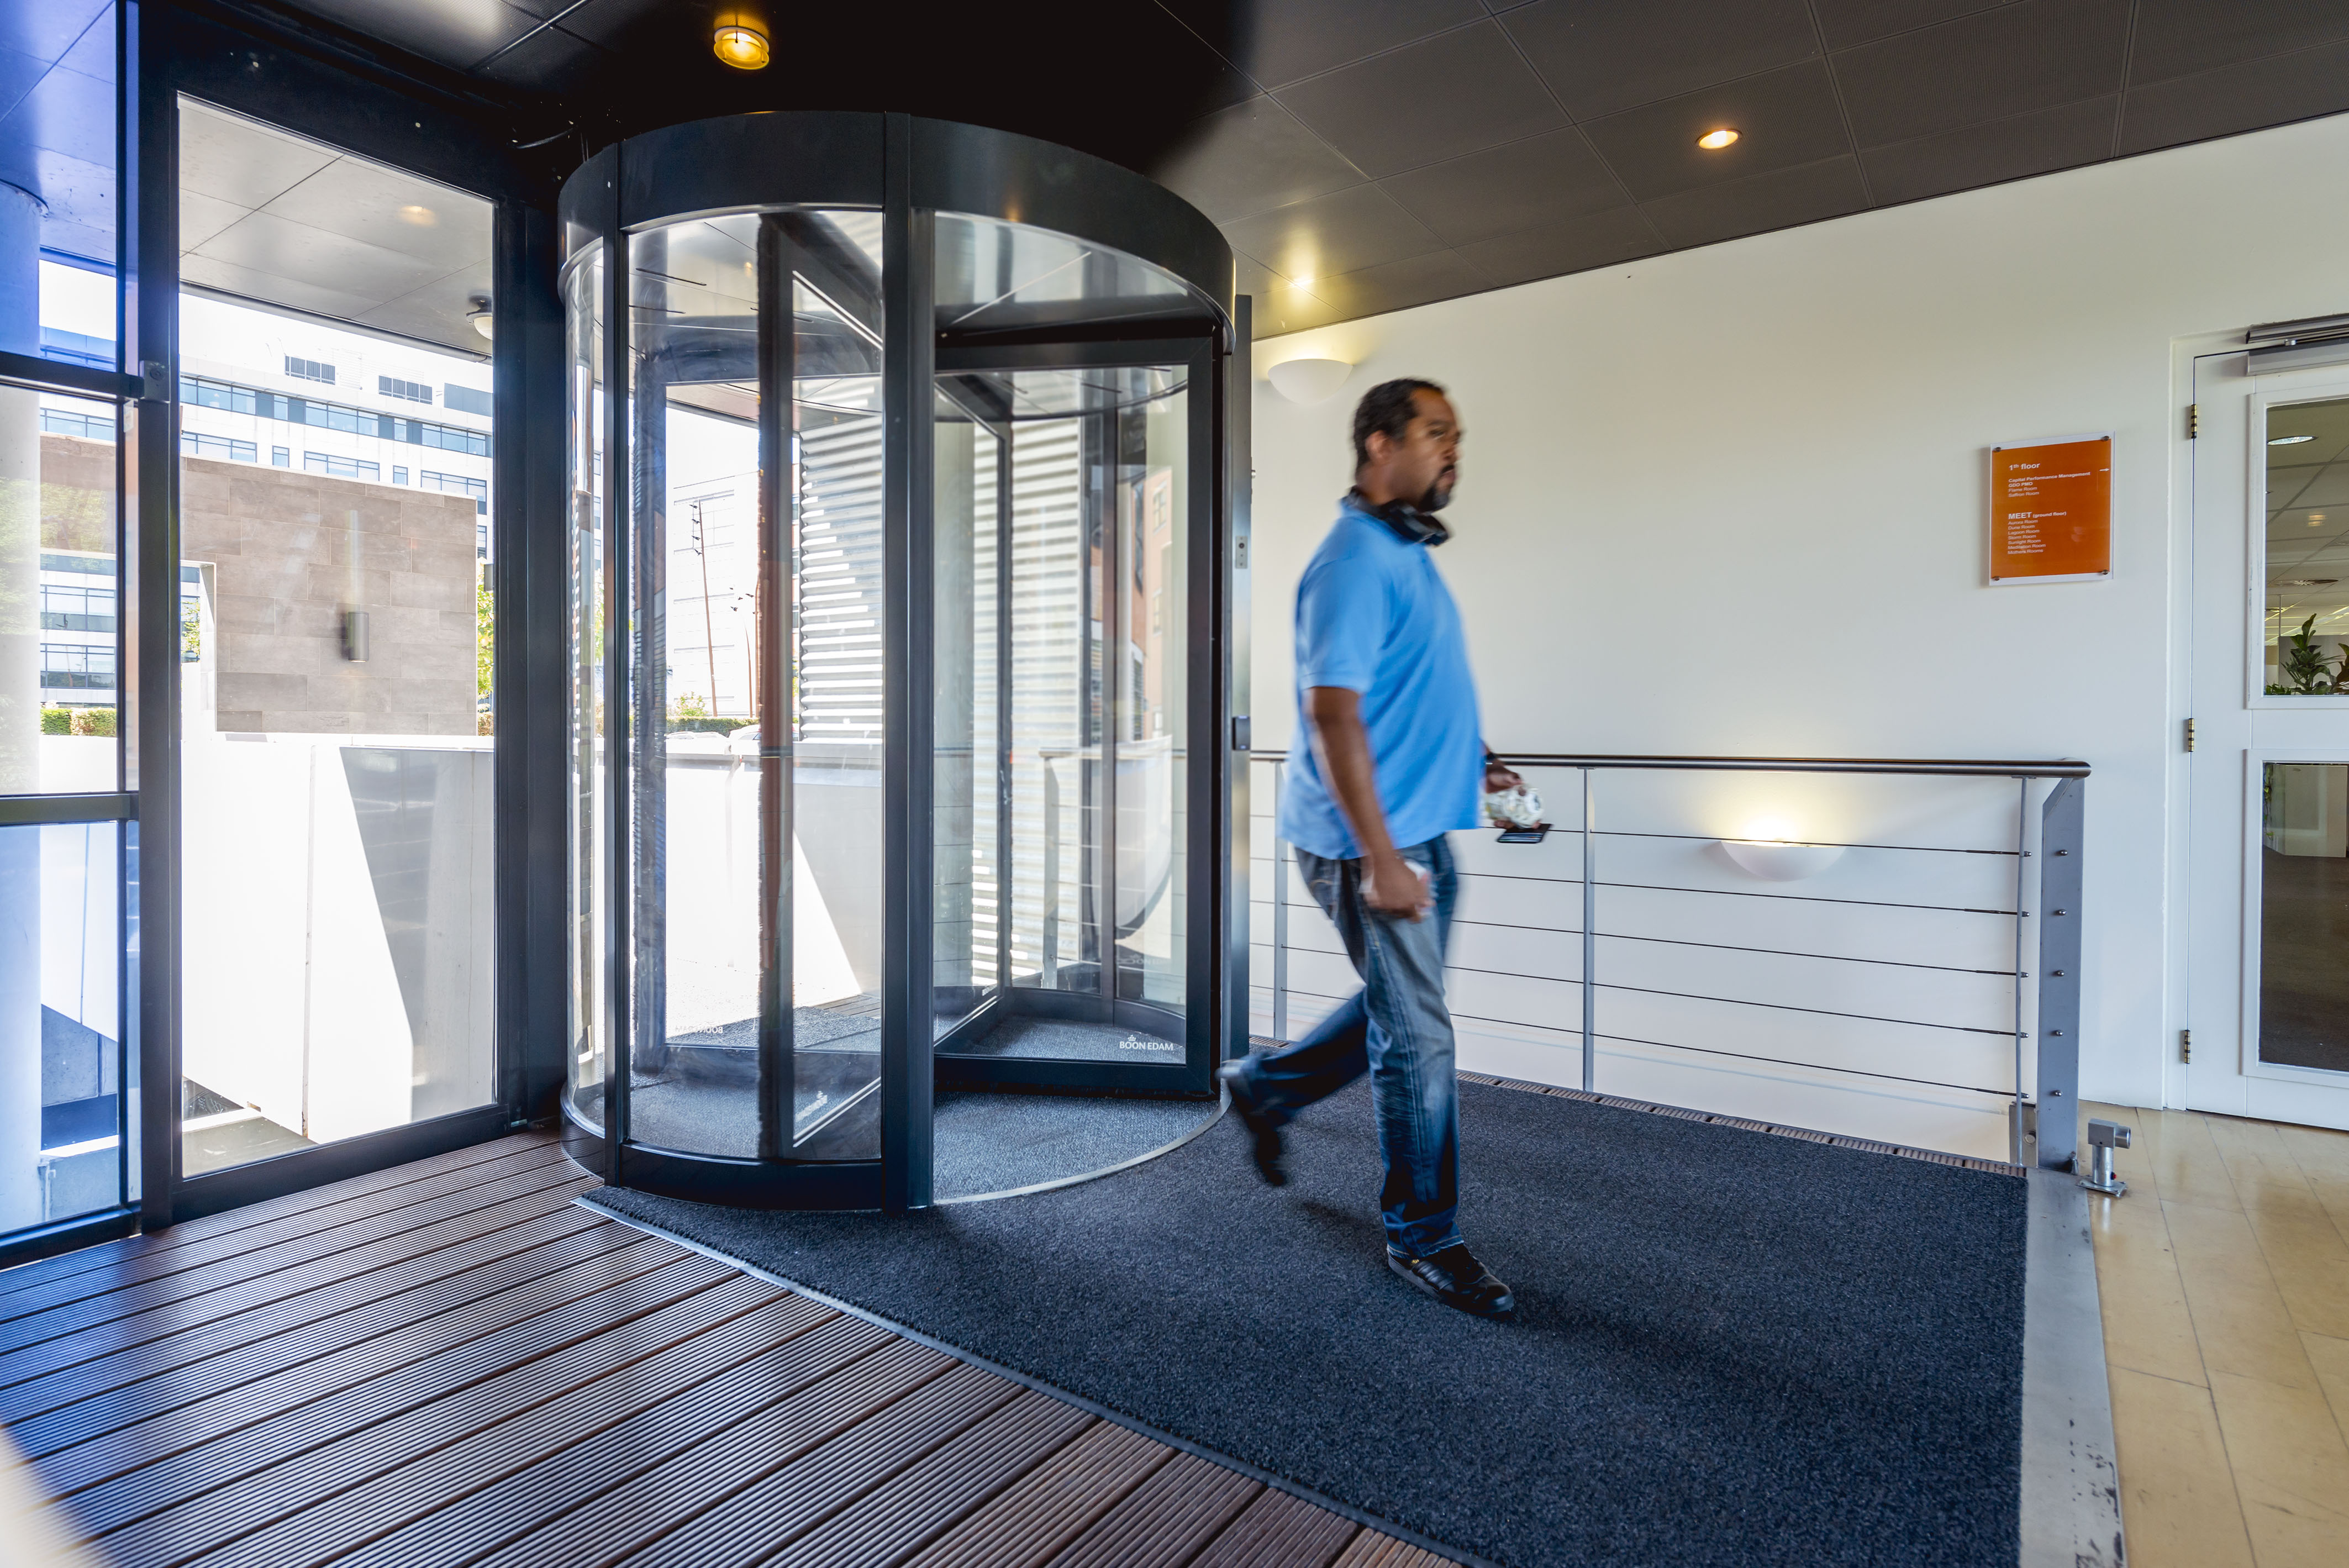 Security Revolving Doors at Employee-Only Entrances for Unmanned Tailgating and Piggybacking Prevention